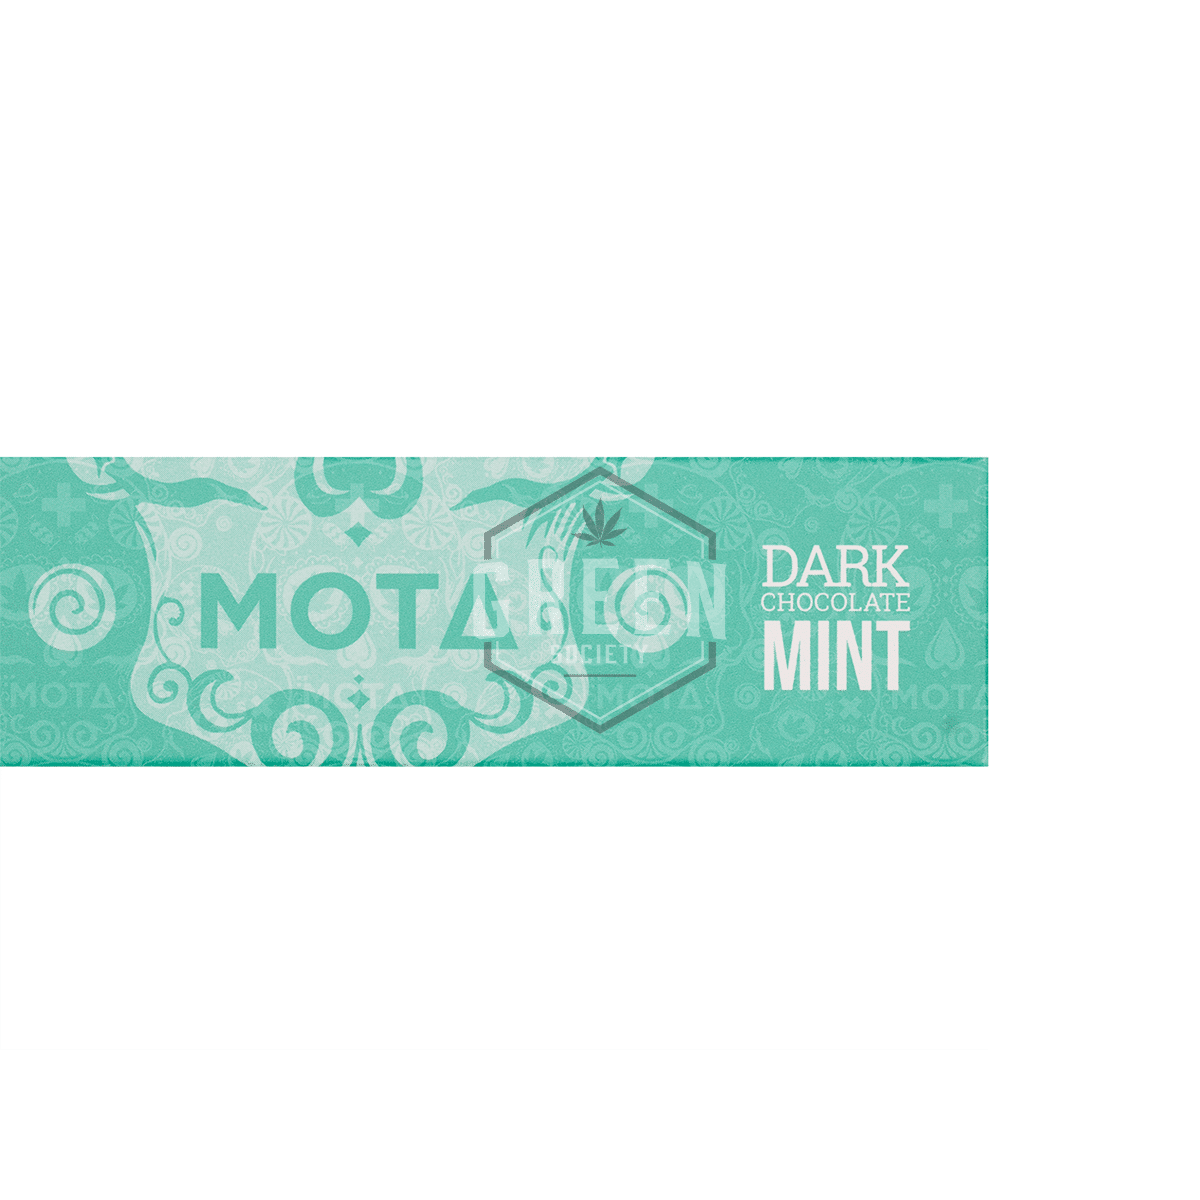 Mint Dark Chocolate Bar by MOTA Cannabis by Green Society - Image © 2018 Green Society. All Rights Reserved.